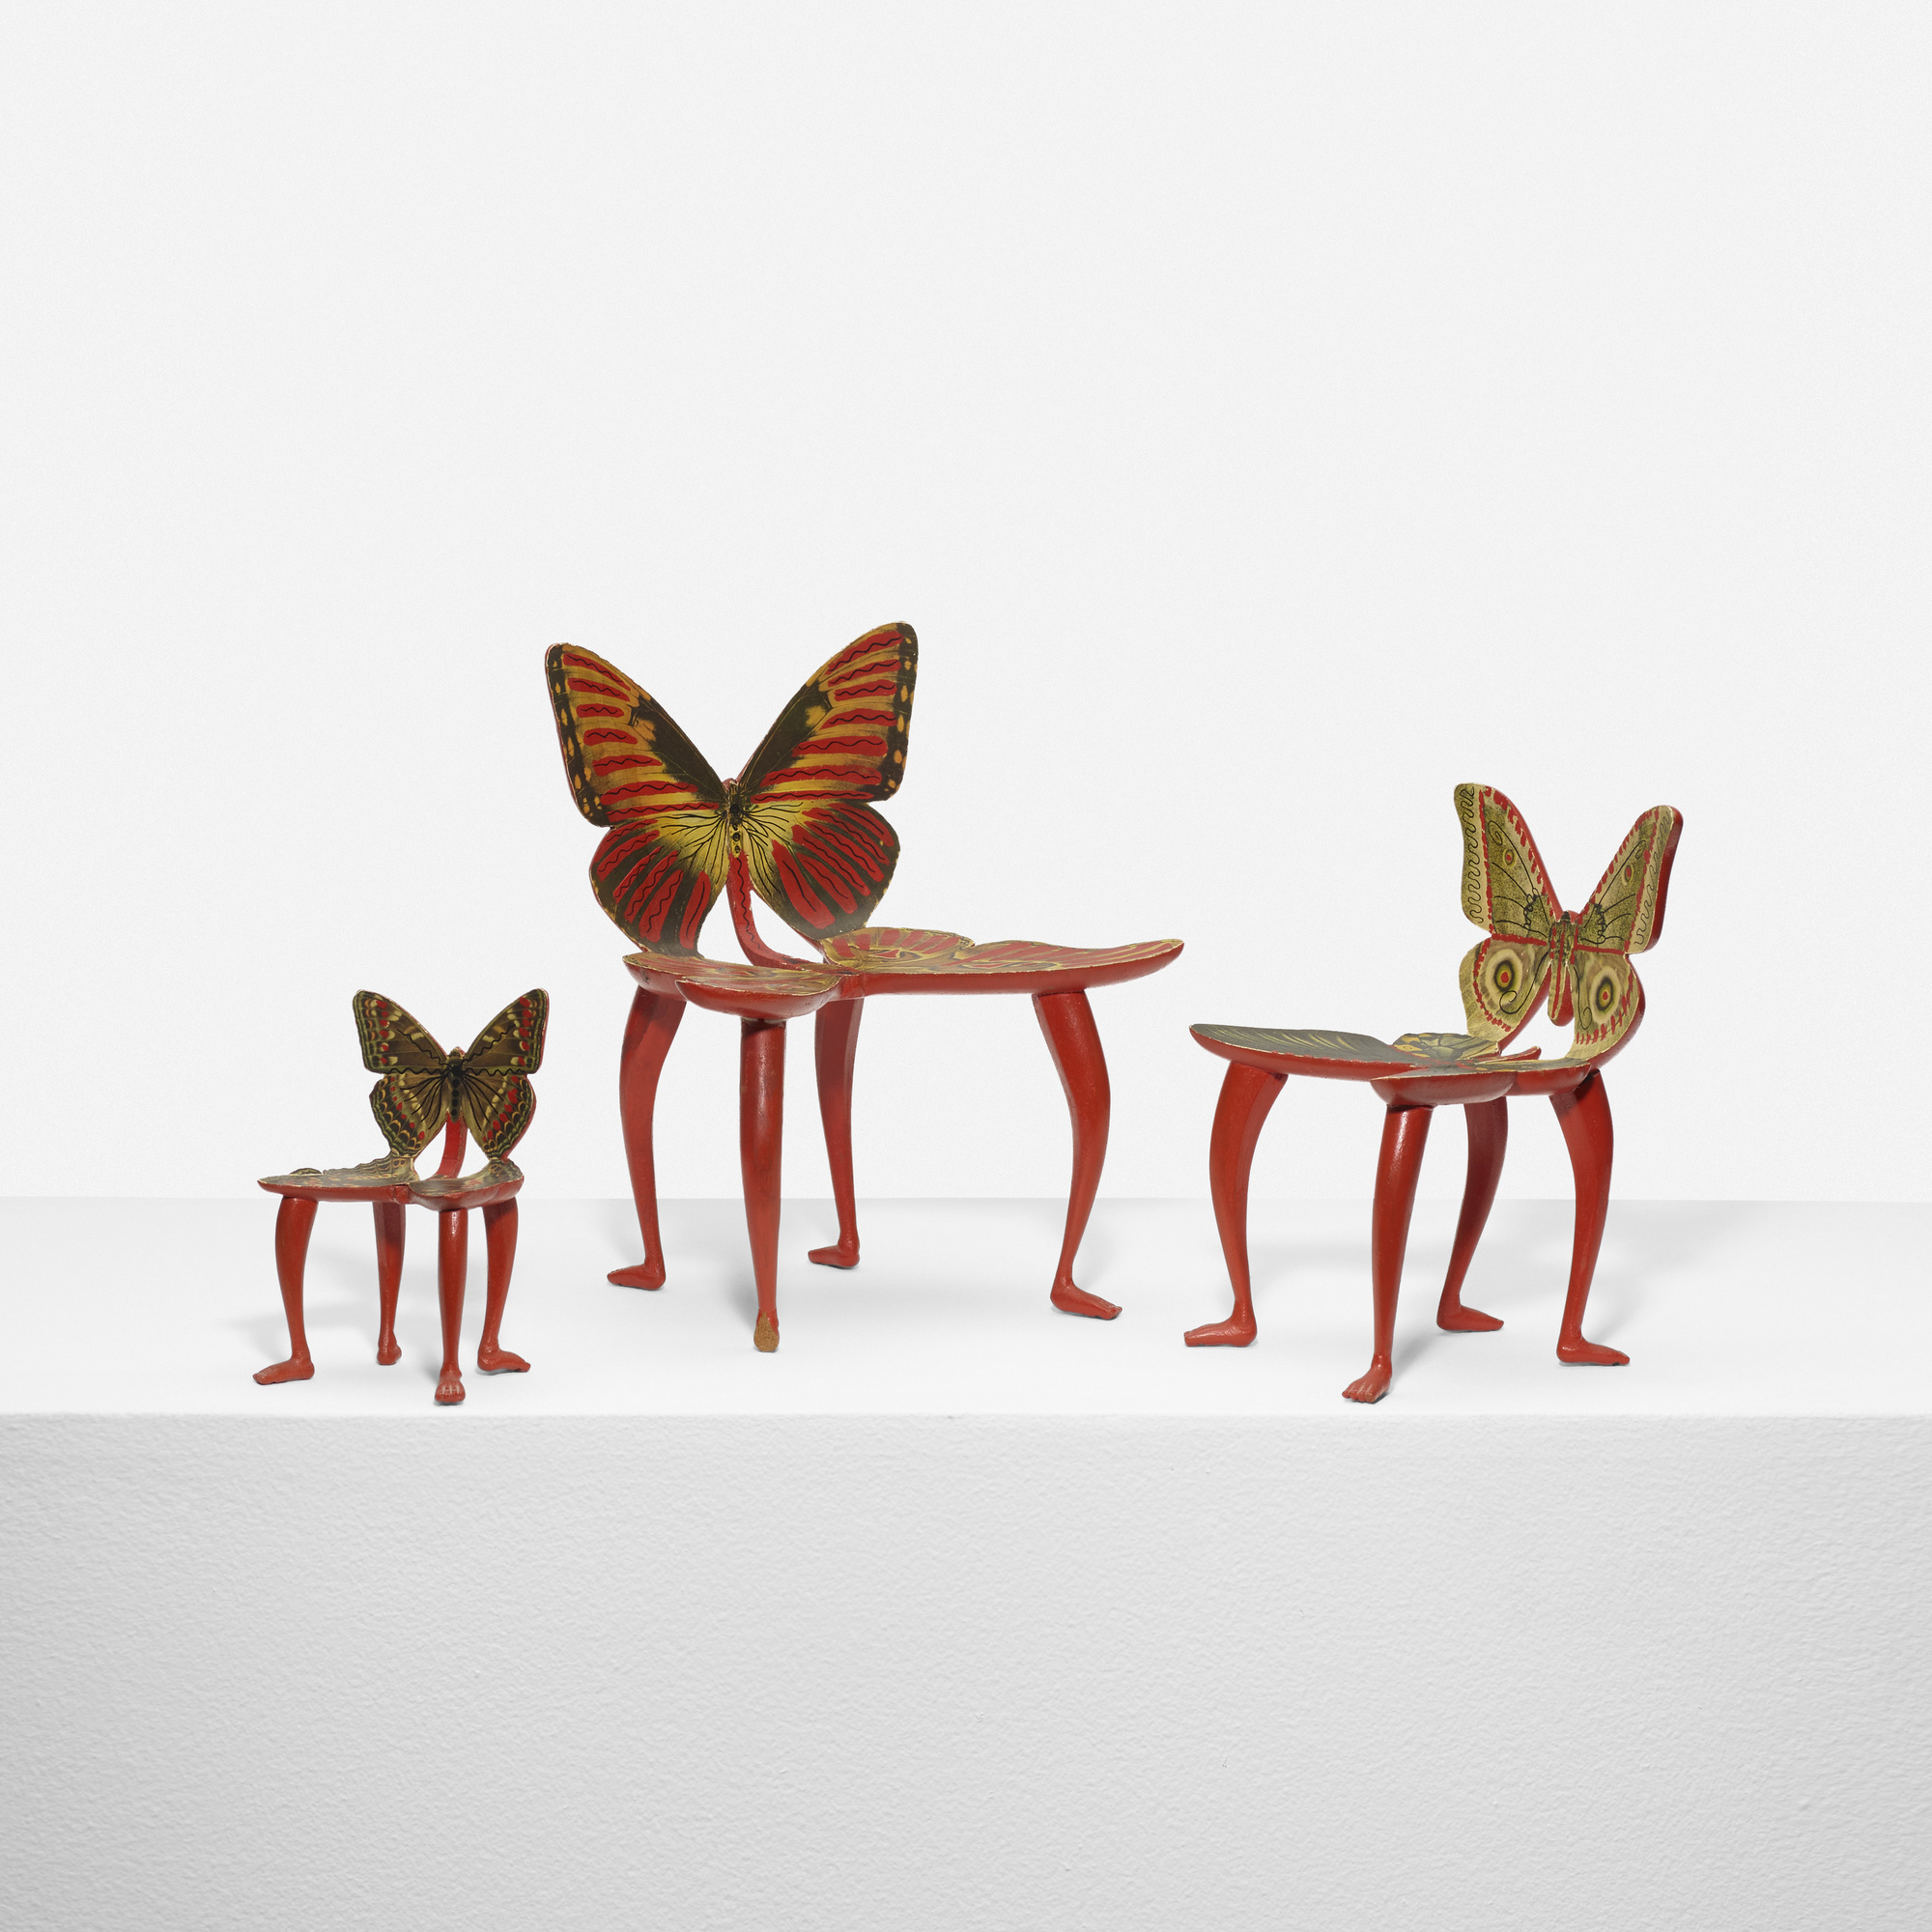 115: Pedro Friedeberg / set of three miniature Butterfly chair models (1 of 3)